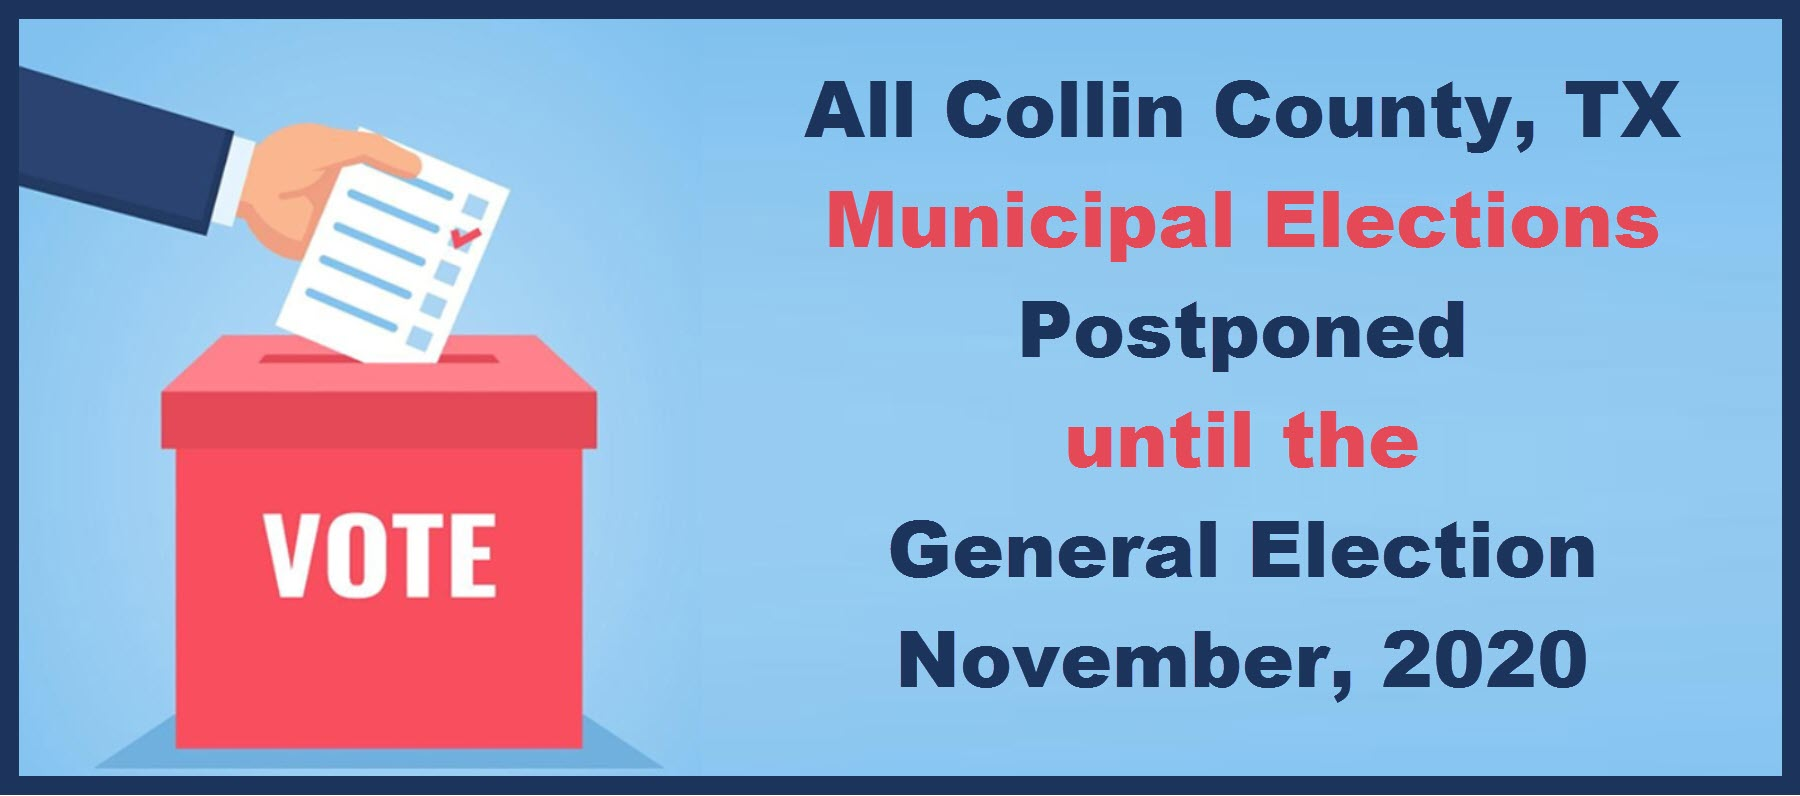 Collin County Municipal Elections Postponed until Nov 3